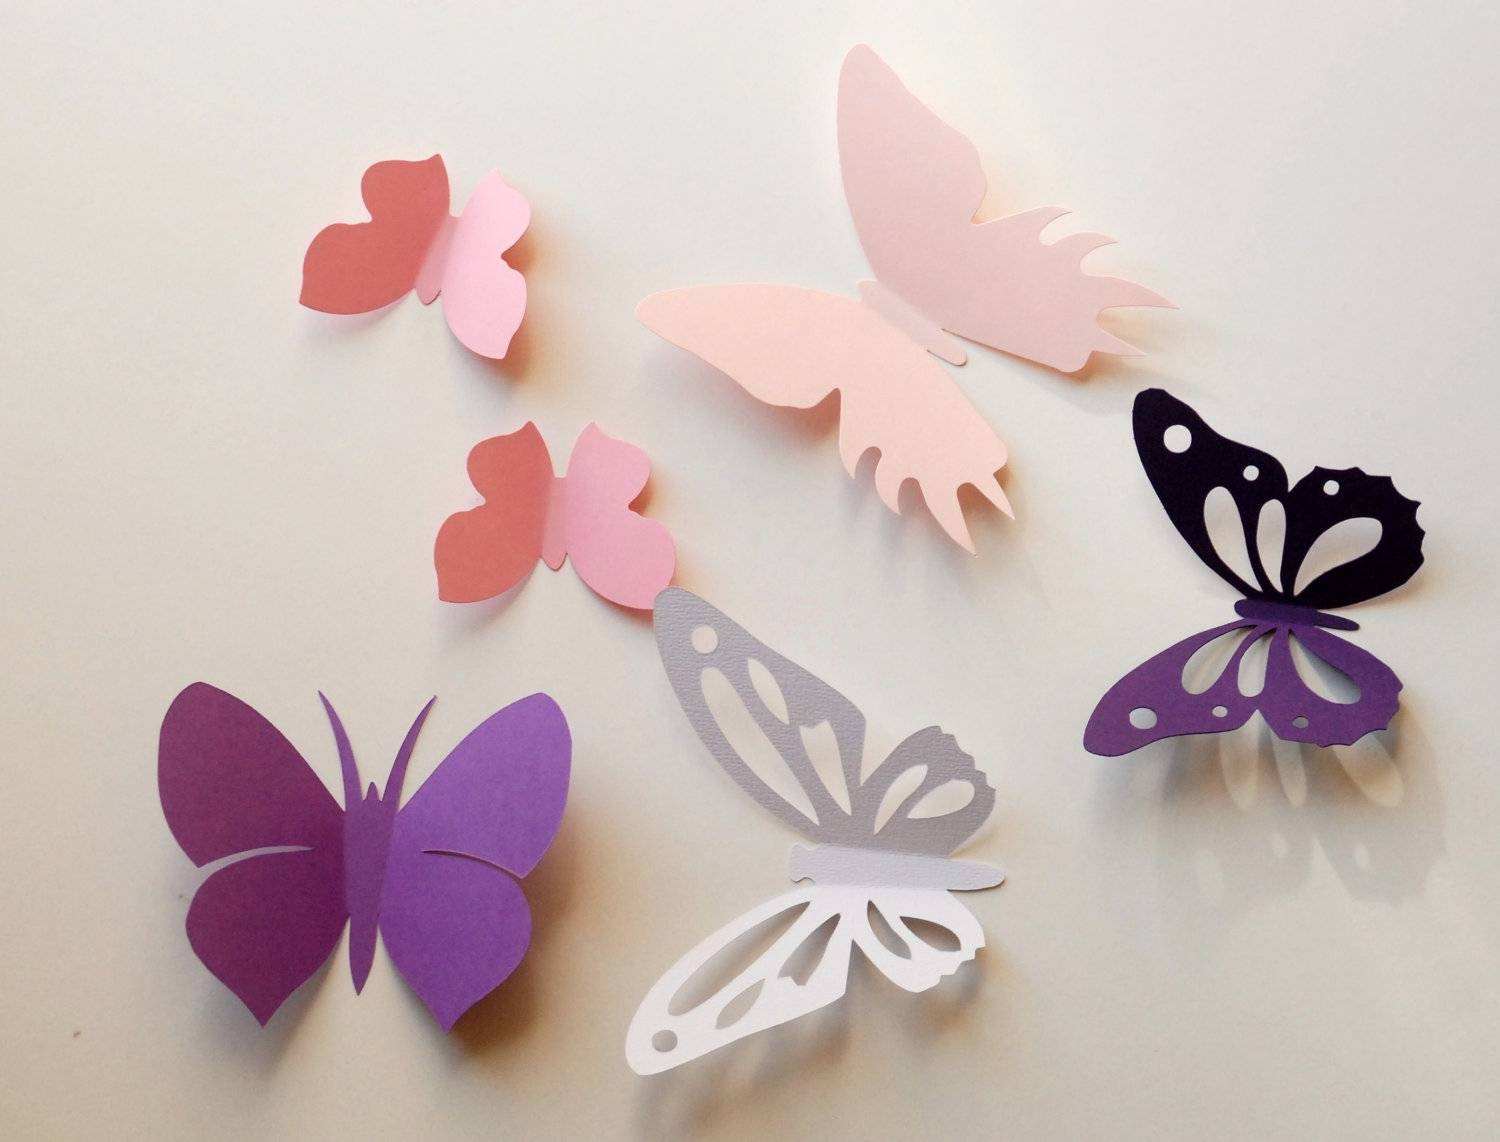 3d Paper Butterfly Wall Sticker Room Decoration Baby Within Most Up To Date White 3d Butterfly Wall Art (View 12 of 20)